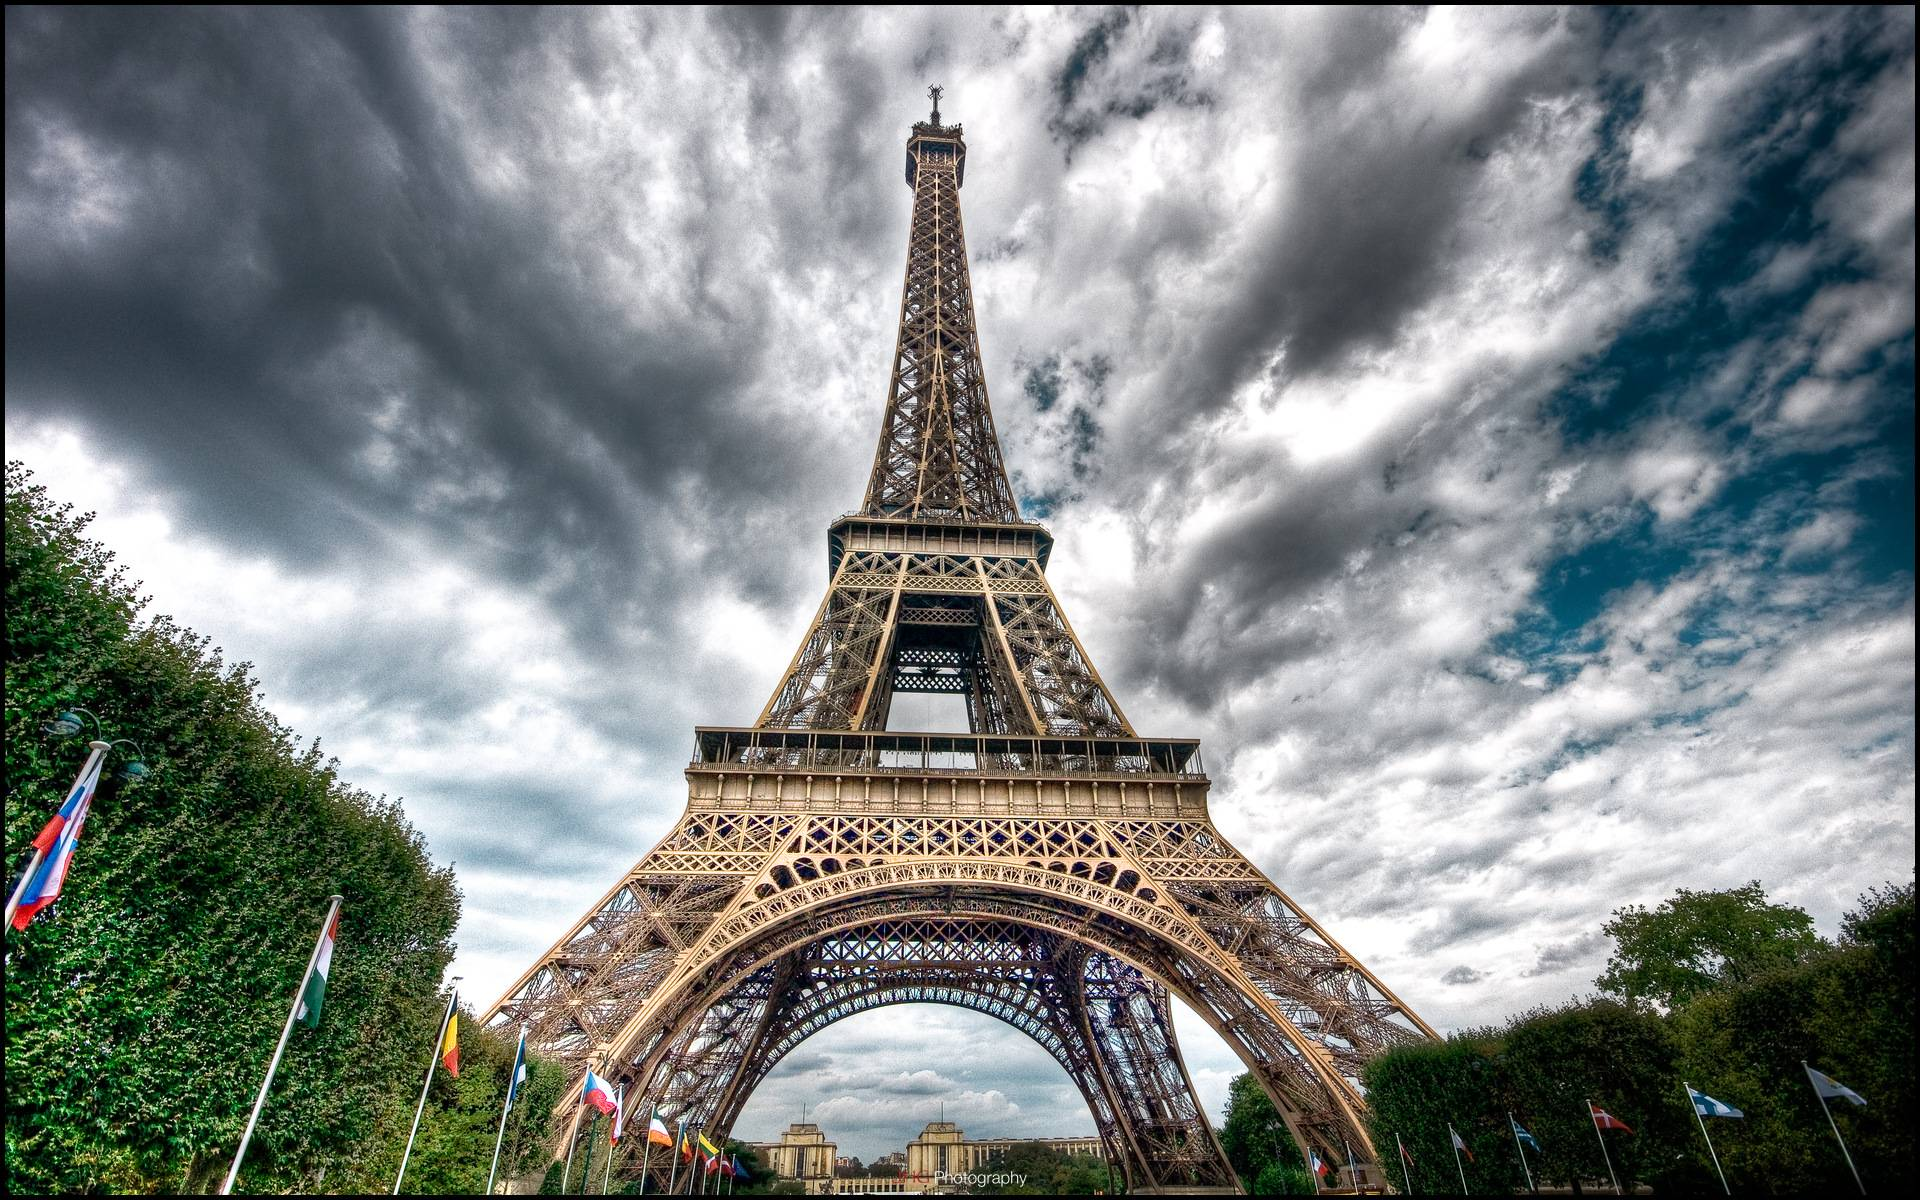 an in depth look at the eiffel tower in paris france